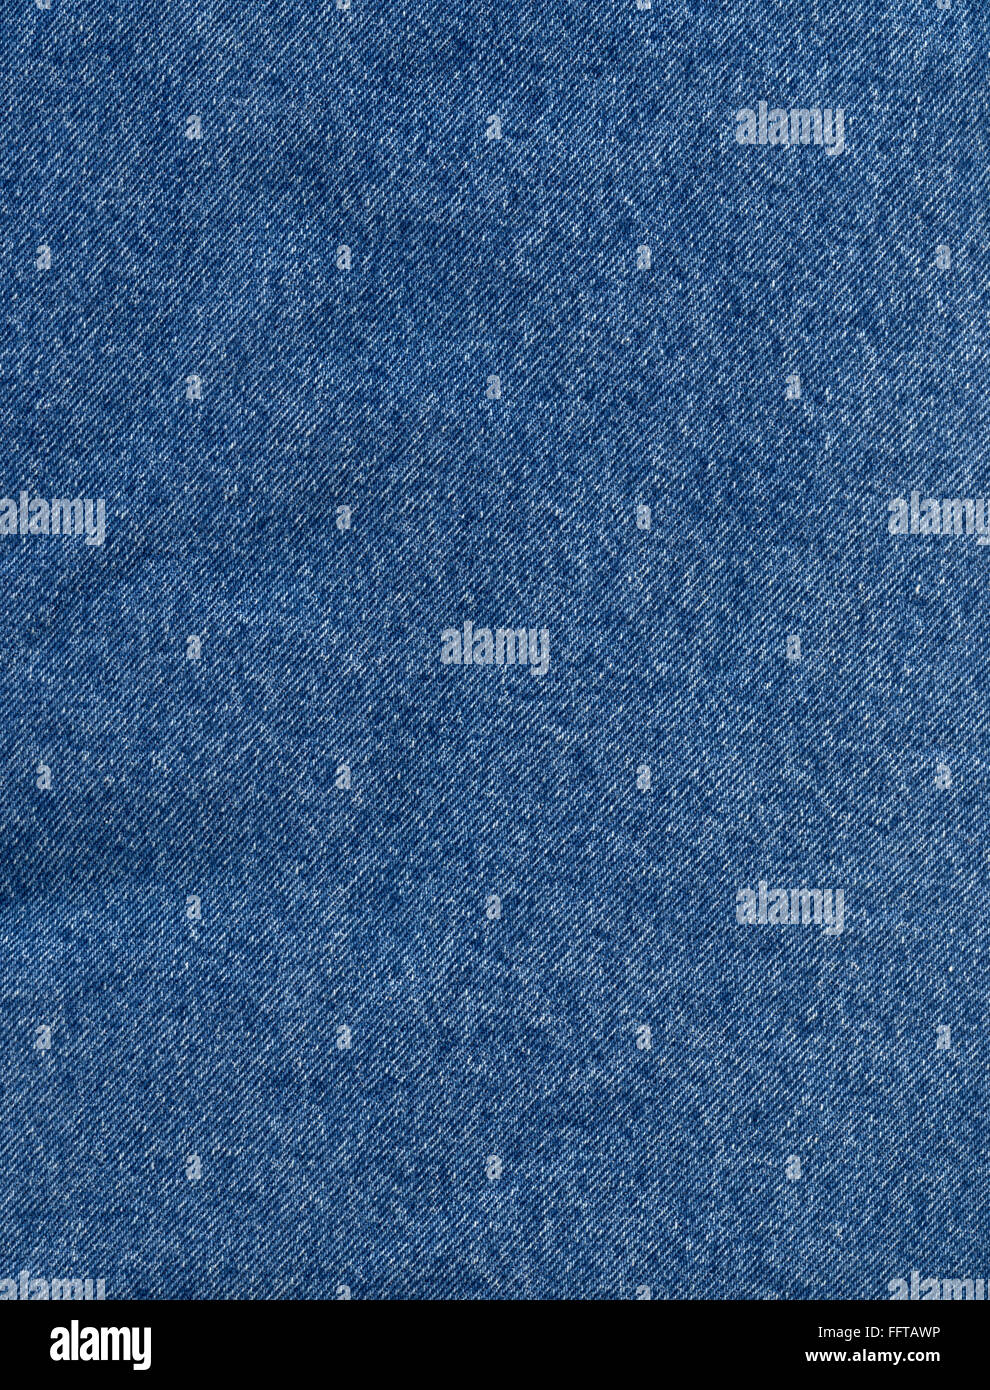 Jeans Jeansstoff Stoff Hintergrund Struktur Background Abstrakt Bekleidung Kleidung Klamotten Blau Canvas Close - Stock Image